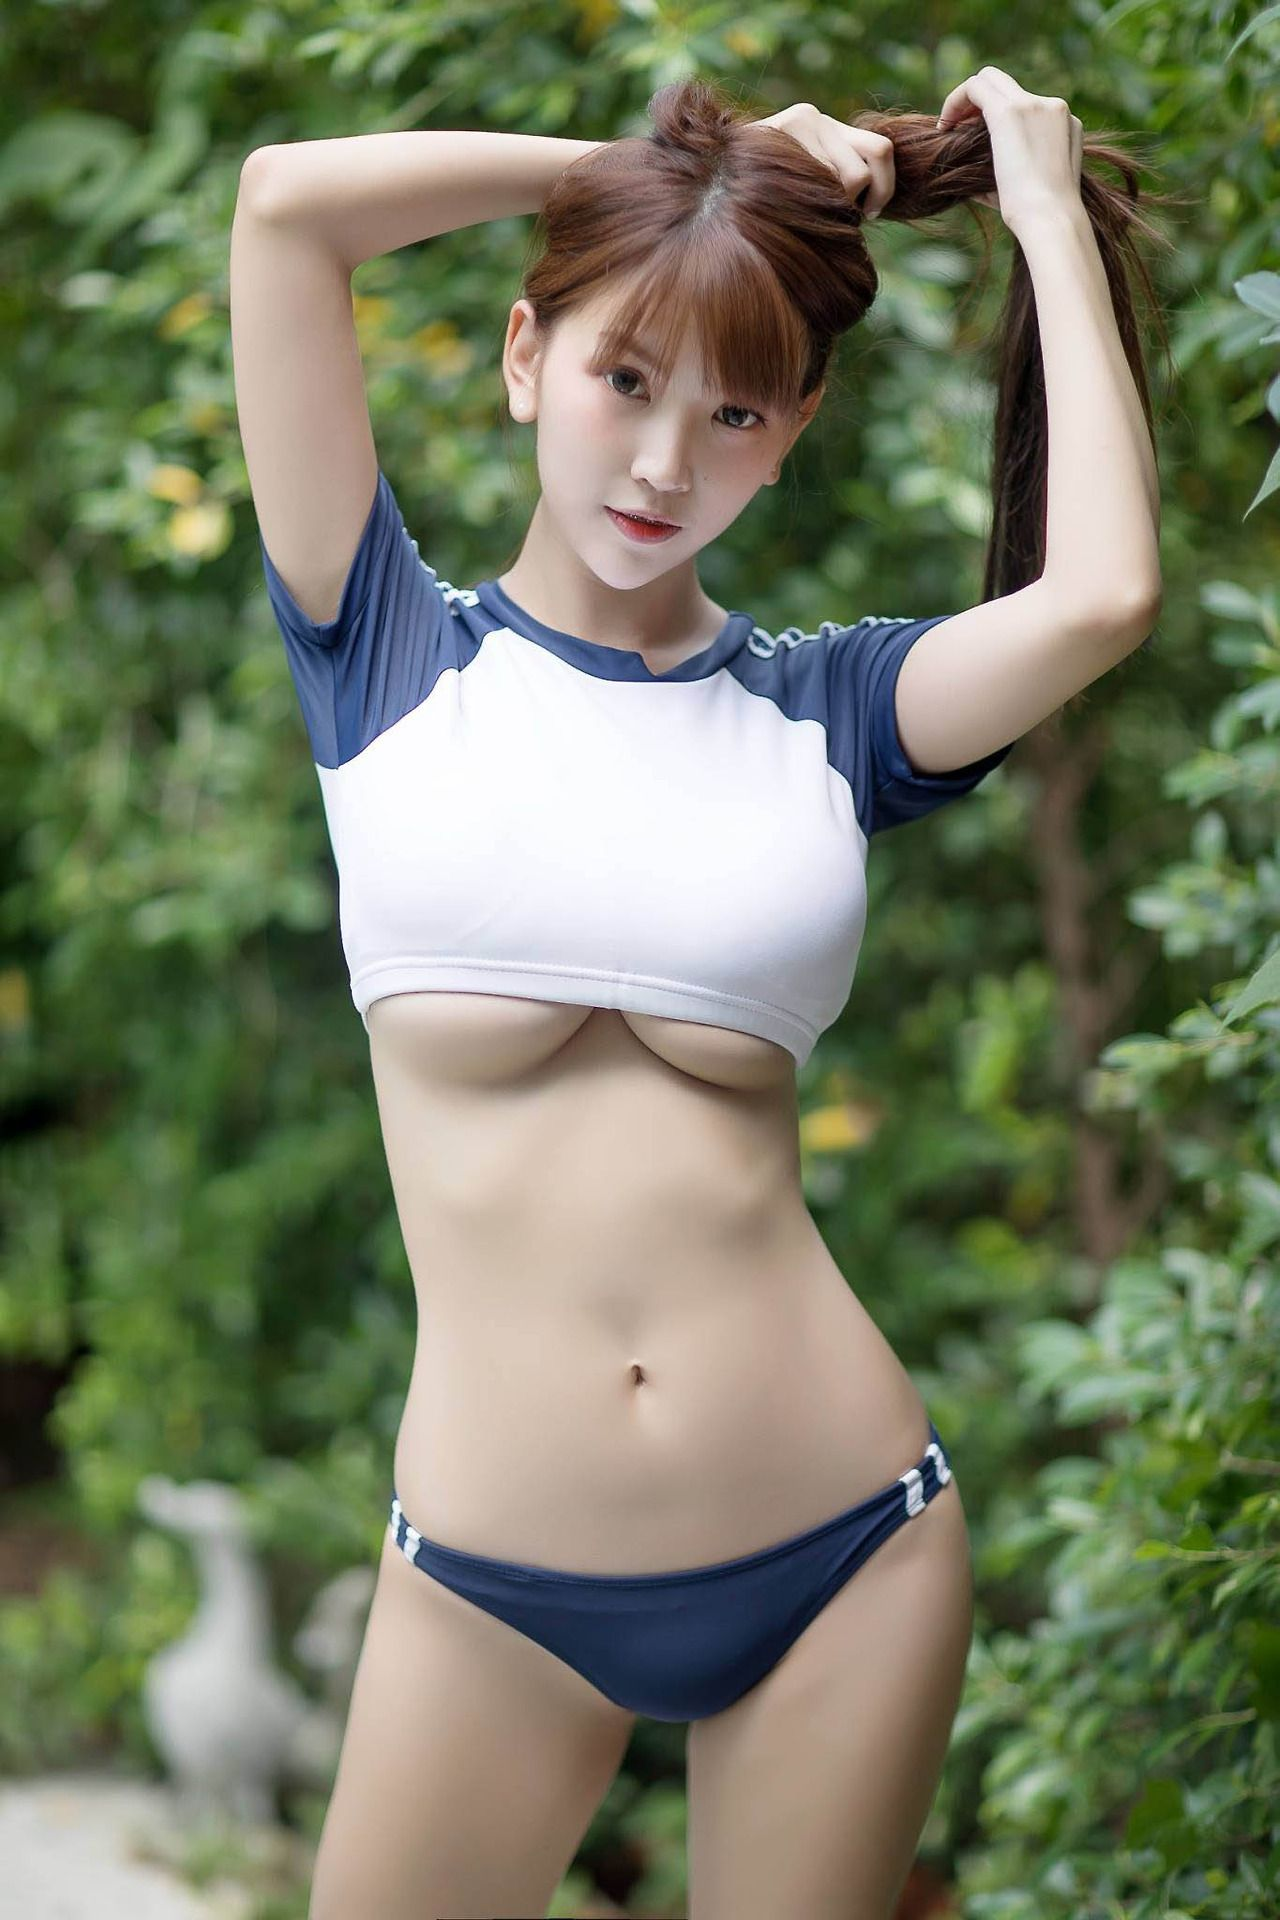 Asian Hot Girls Photo